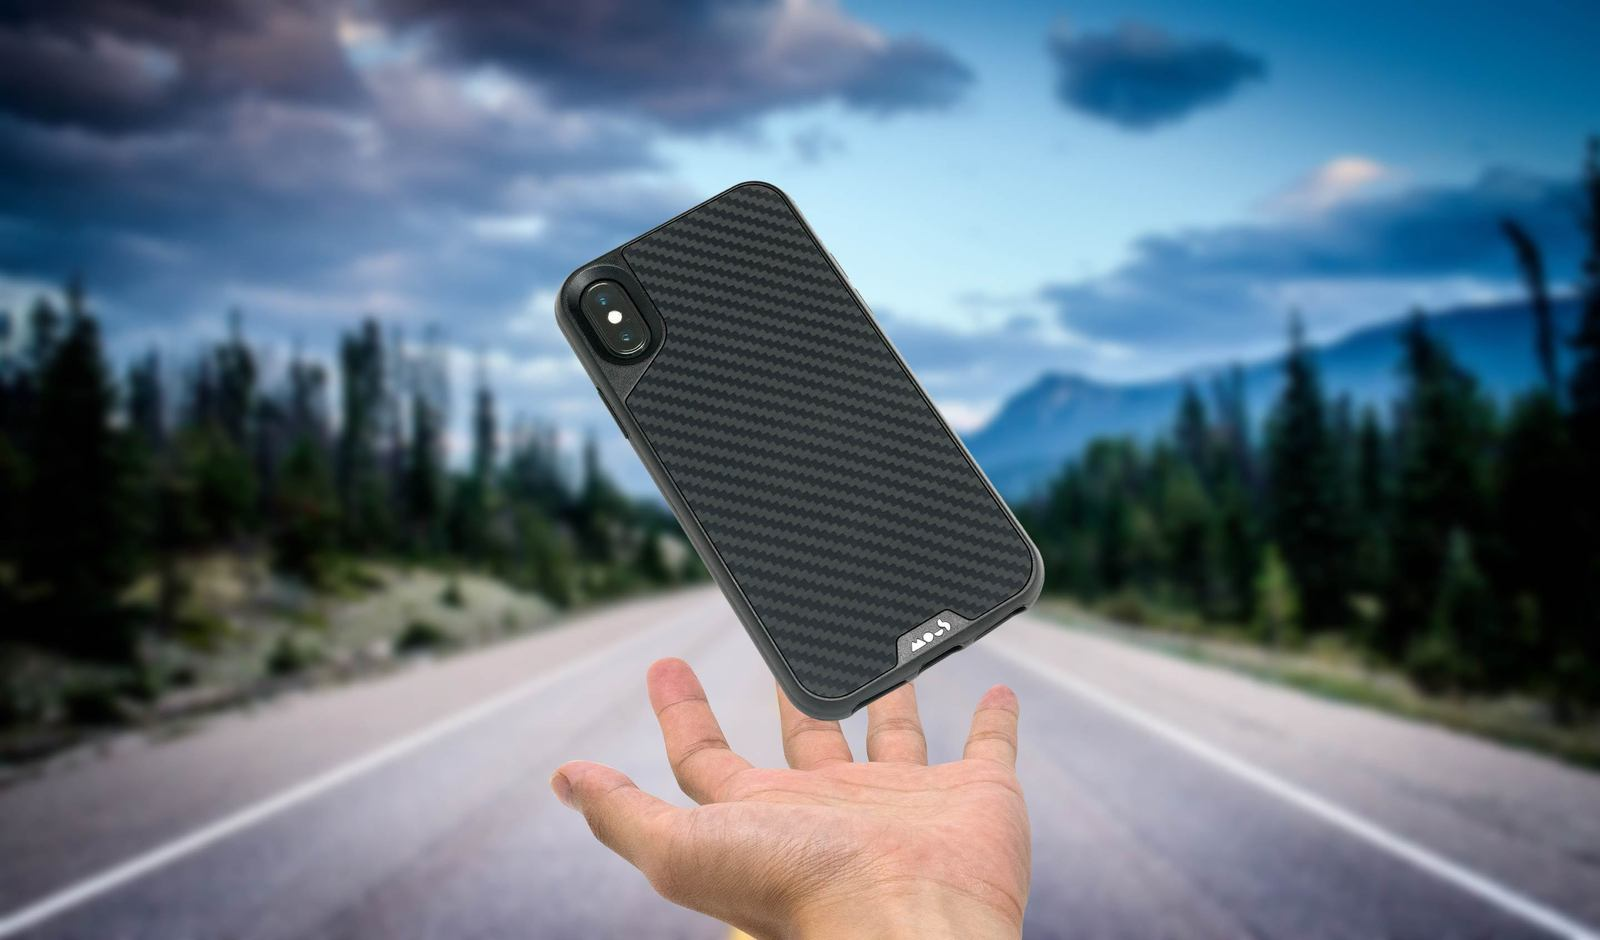 Mous - Slim Ultra Rugged Case With Premium Finish